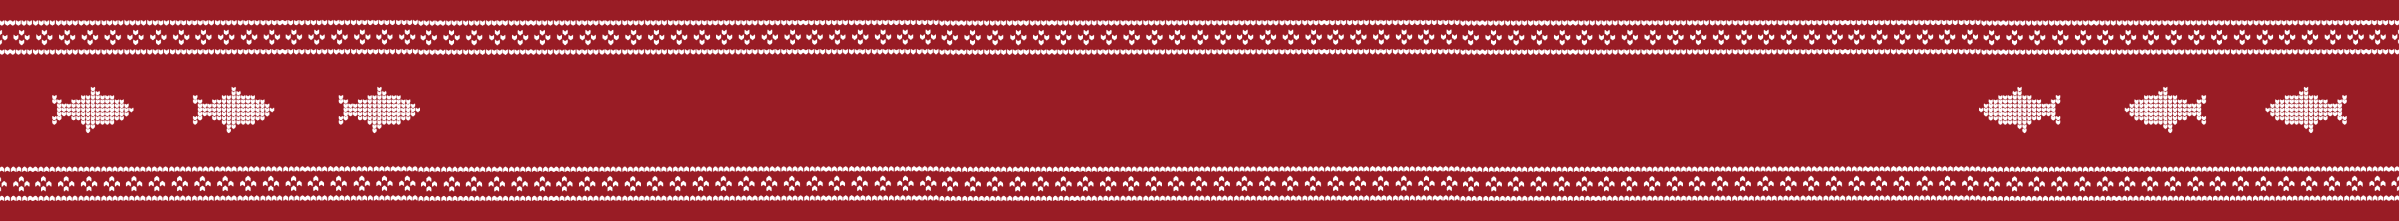 decorative holiday banner